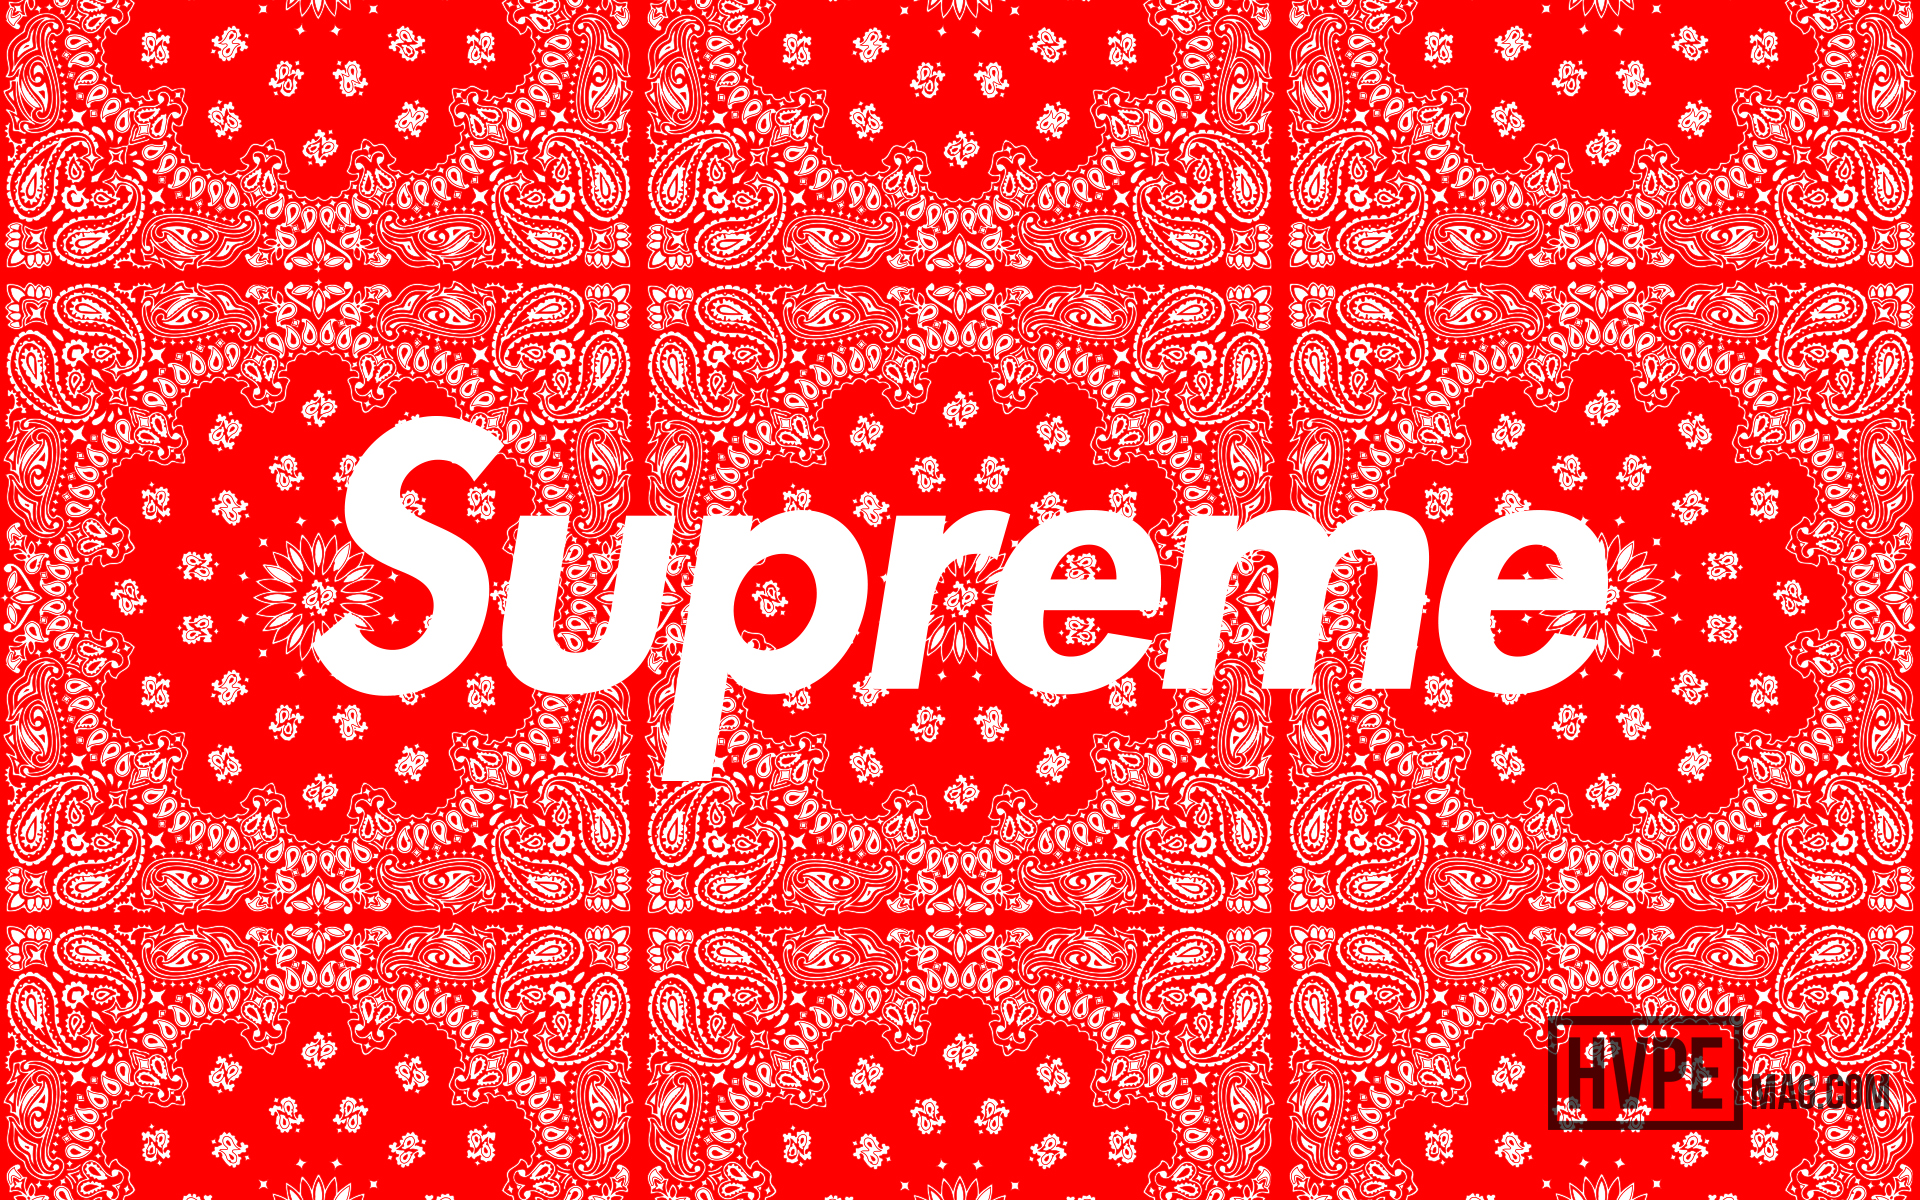 Download Supreme New York Wallpaper Gallery